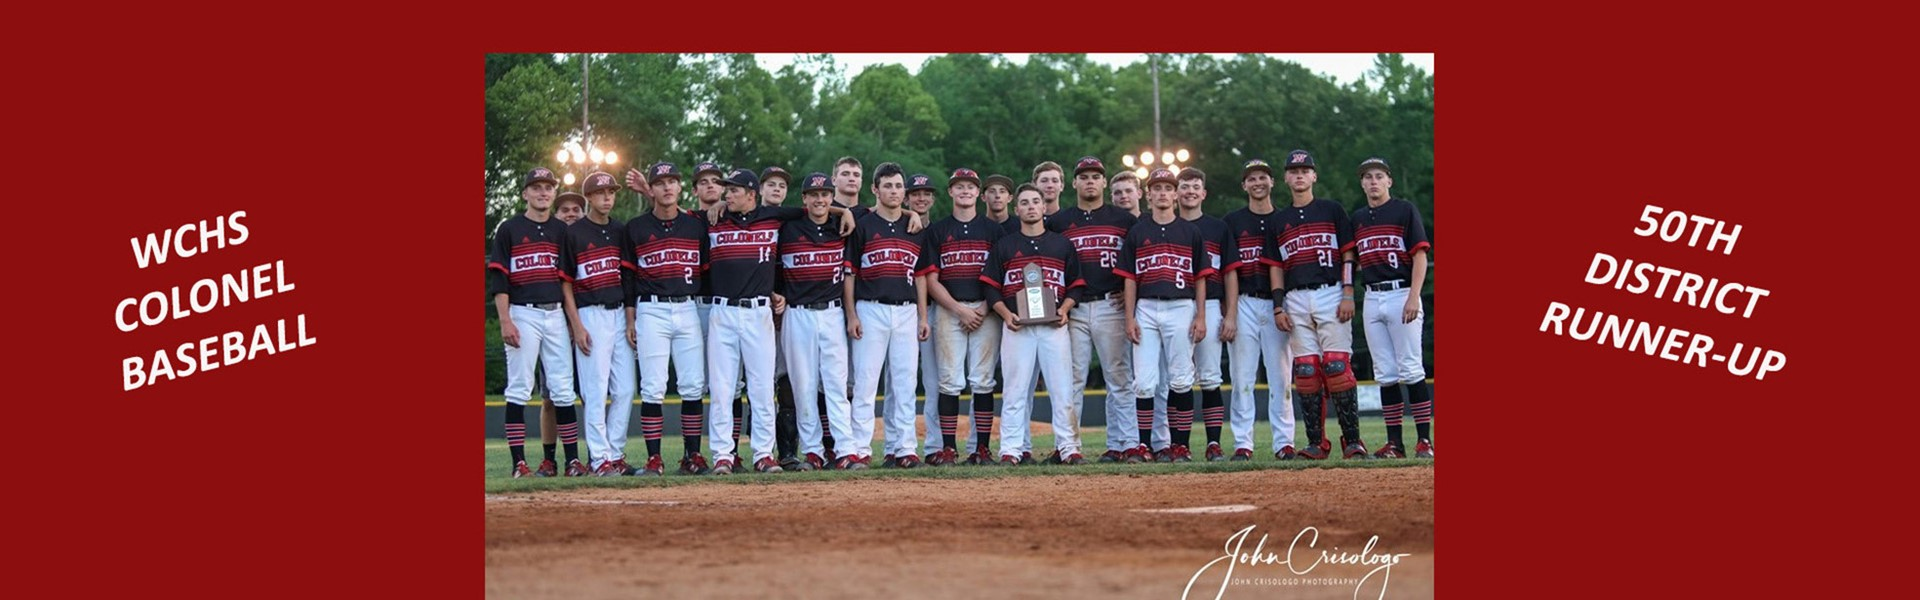 WCHS Colonel Baseball group